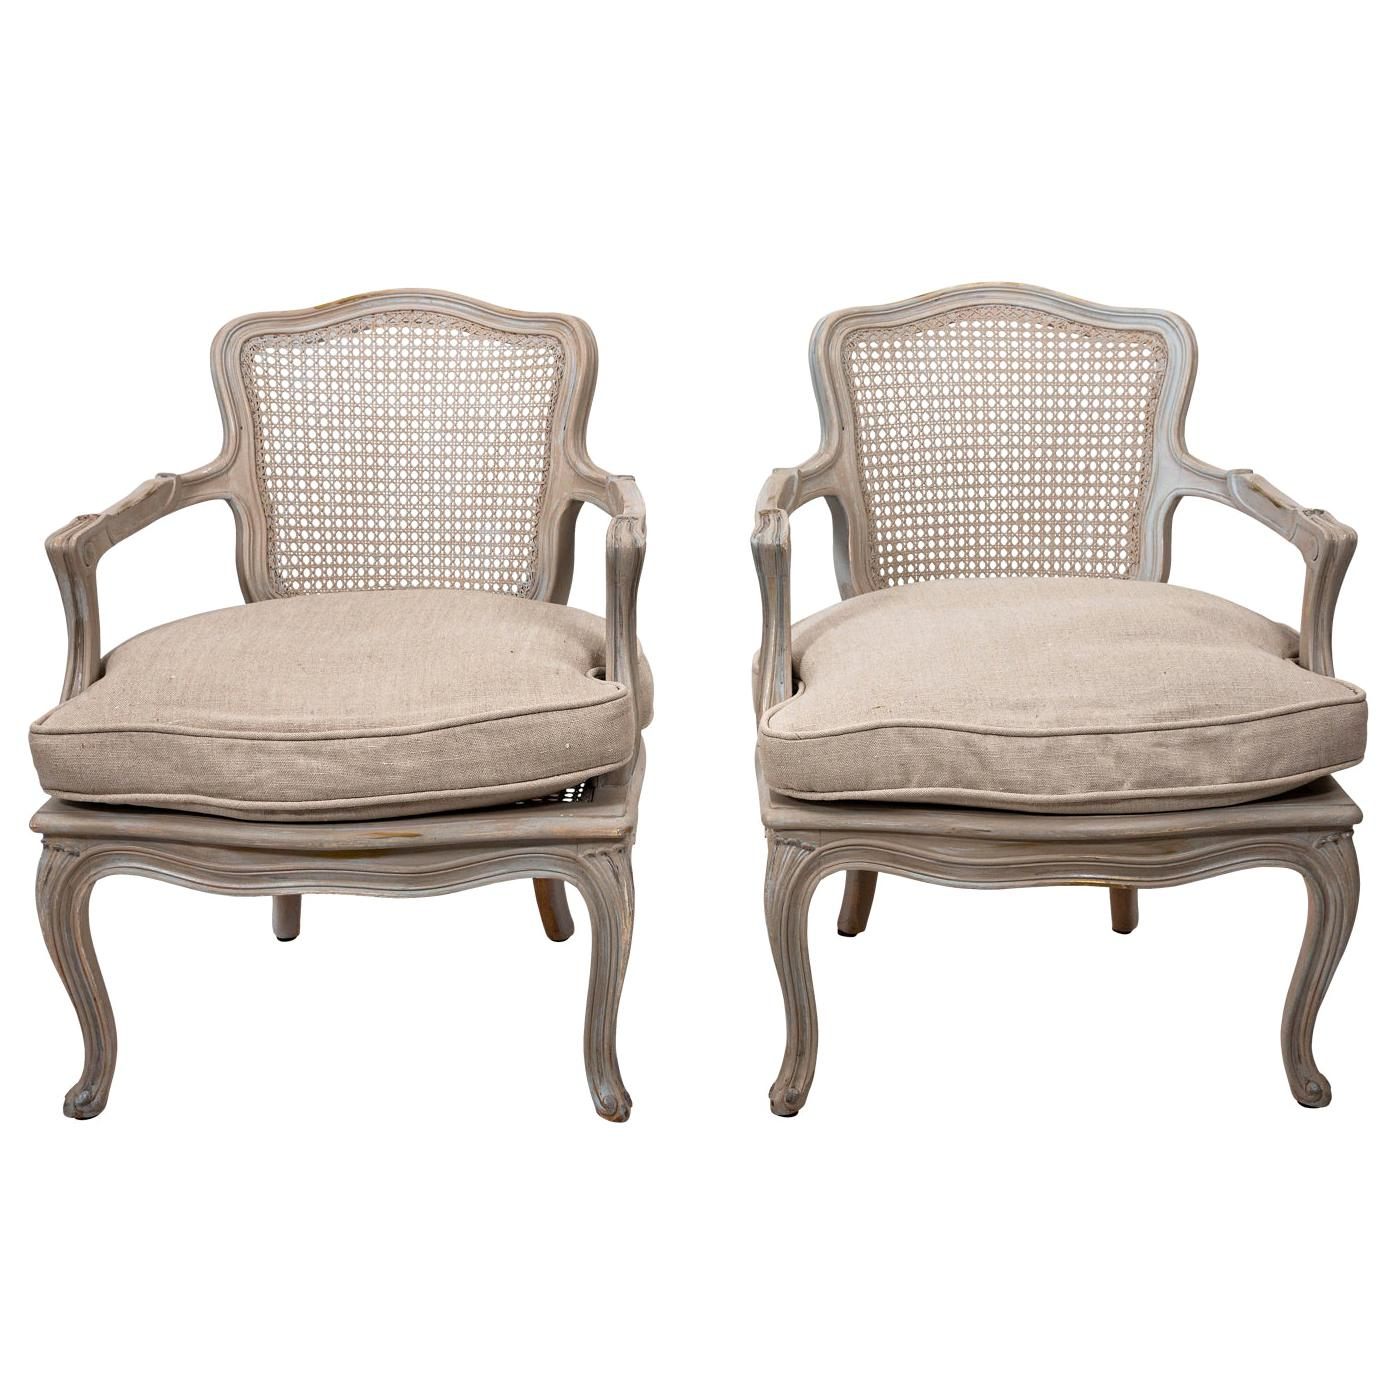 20th Century Pair of Louis XV Style Cane Back Armchairs